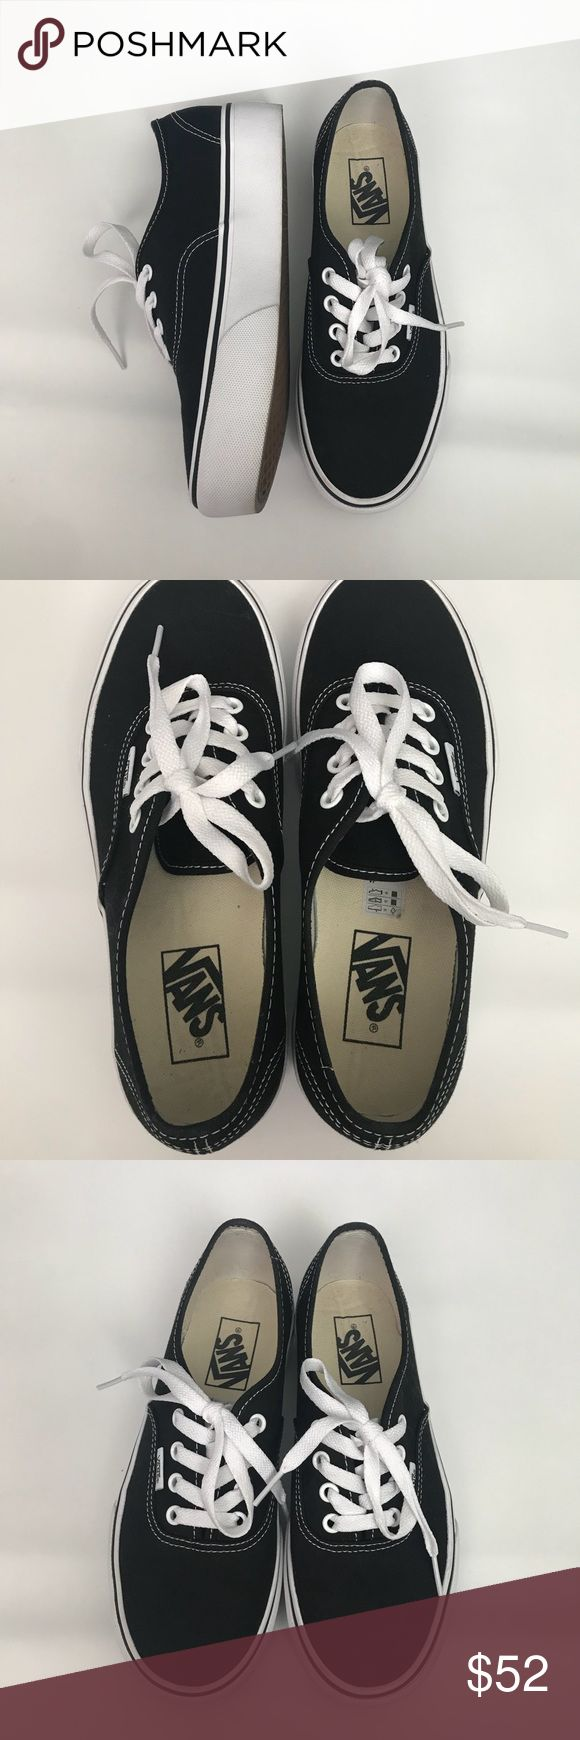 VANS platforms Black Vans platform 2.0/ 4 hole lace up/ worn ONCE!!/ see photos/ too small for me😞 still very NEW, not even broken in❣️🙌🏼  🔸fits a true 8 women or slightly bigger!( I wear 8.5-9) so definitely too small for me.(whaaa)  🔸no trades 🔸comes with box Vans Shoes Platforms